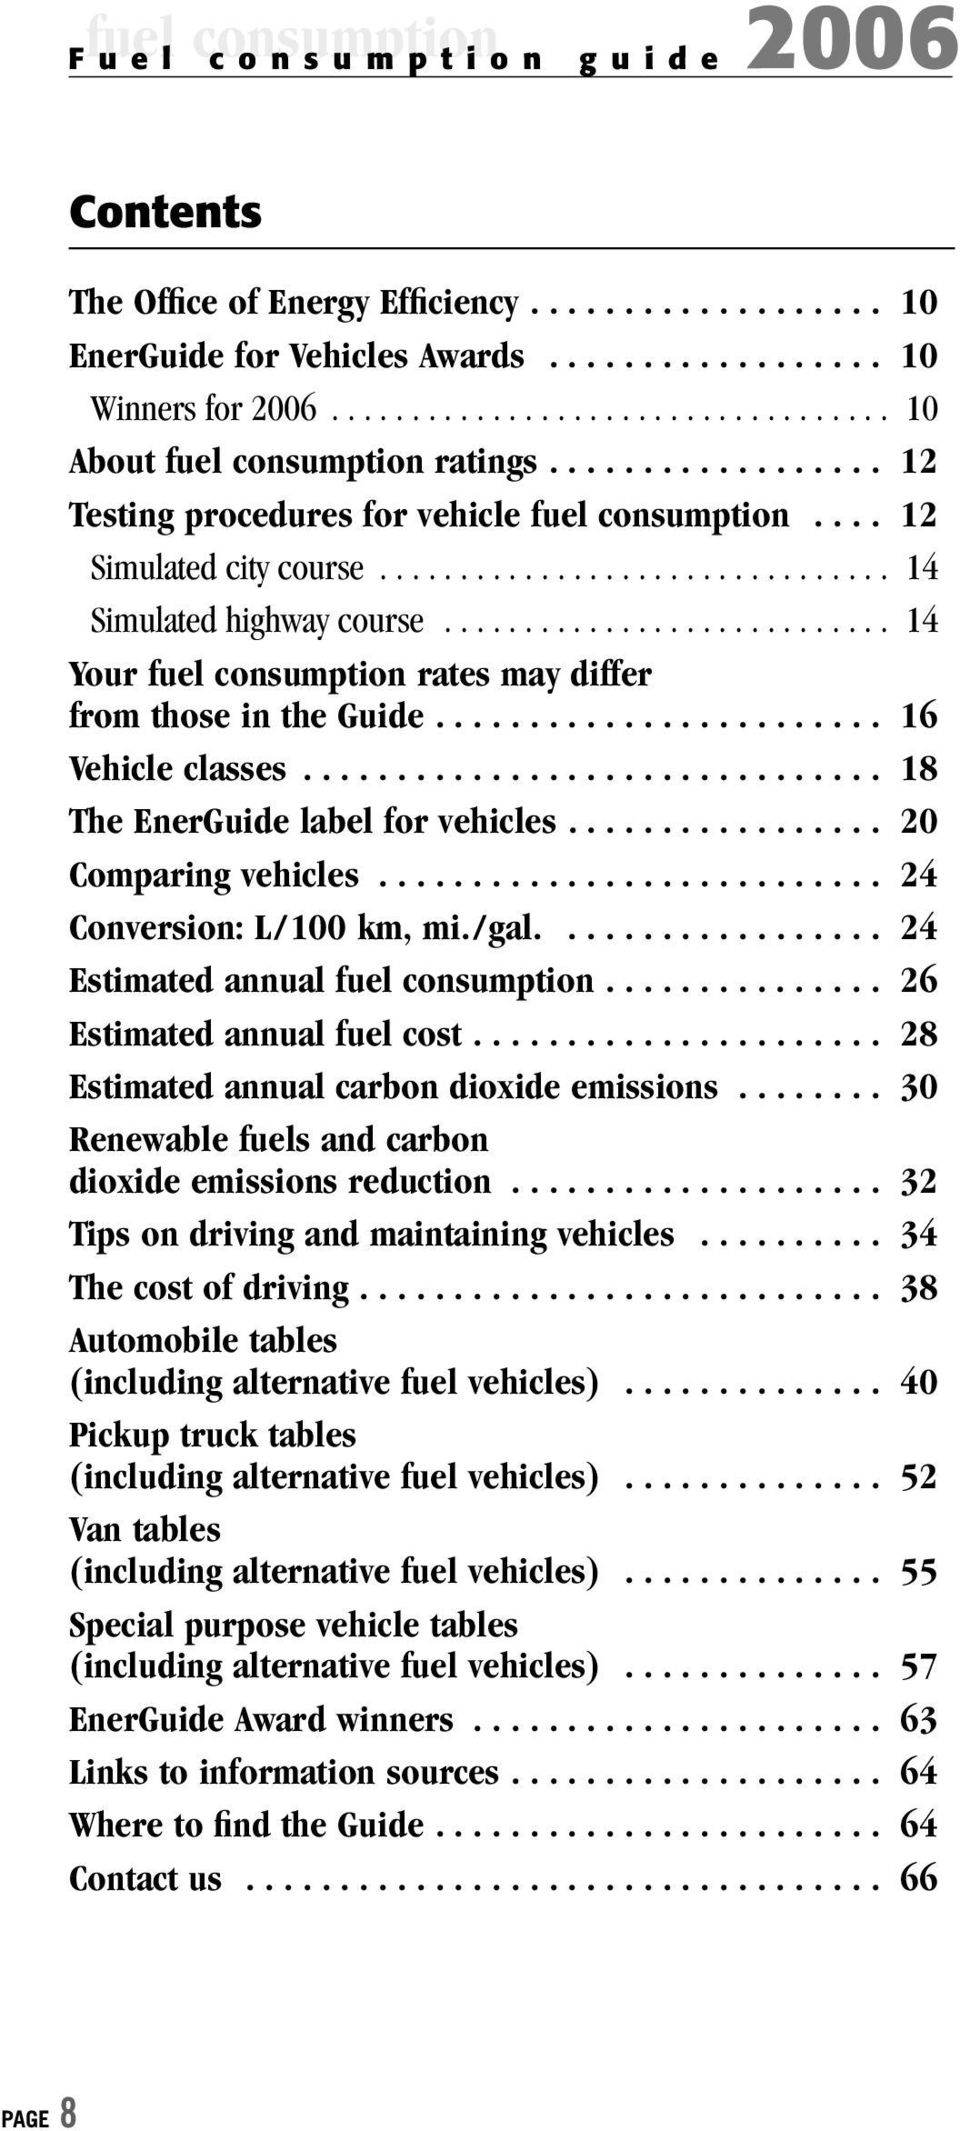 ........................... 14 Your fuel consumption rates may differ from those in the Guide........................ 16 Vehicle classes............................... 18 The EnerGuide label for vehicles.